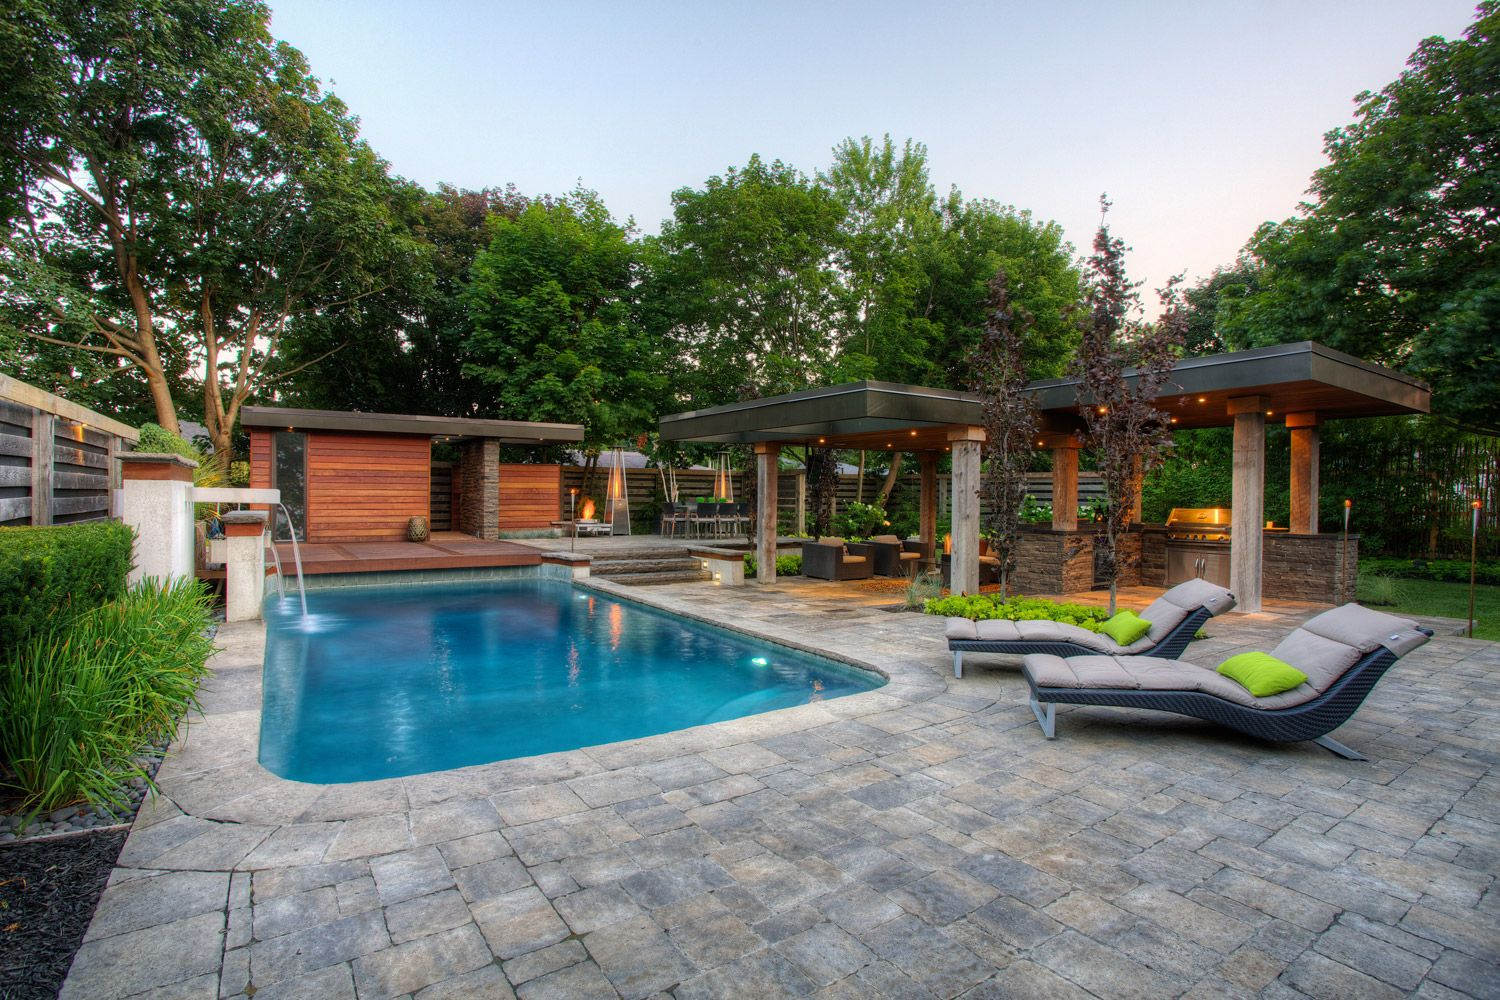 Toronto pool landscaping vaughan landscaping pool for Garden pool designs ideas